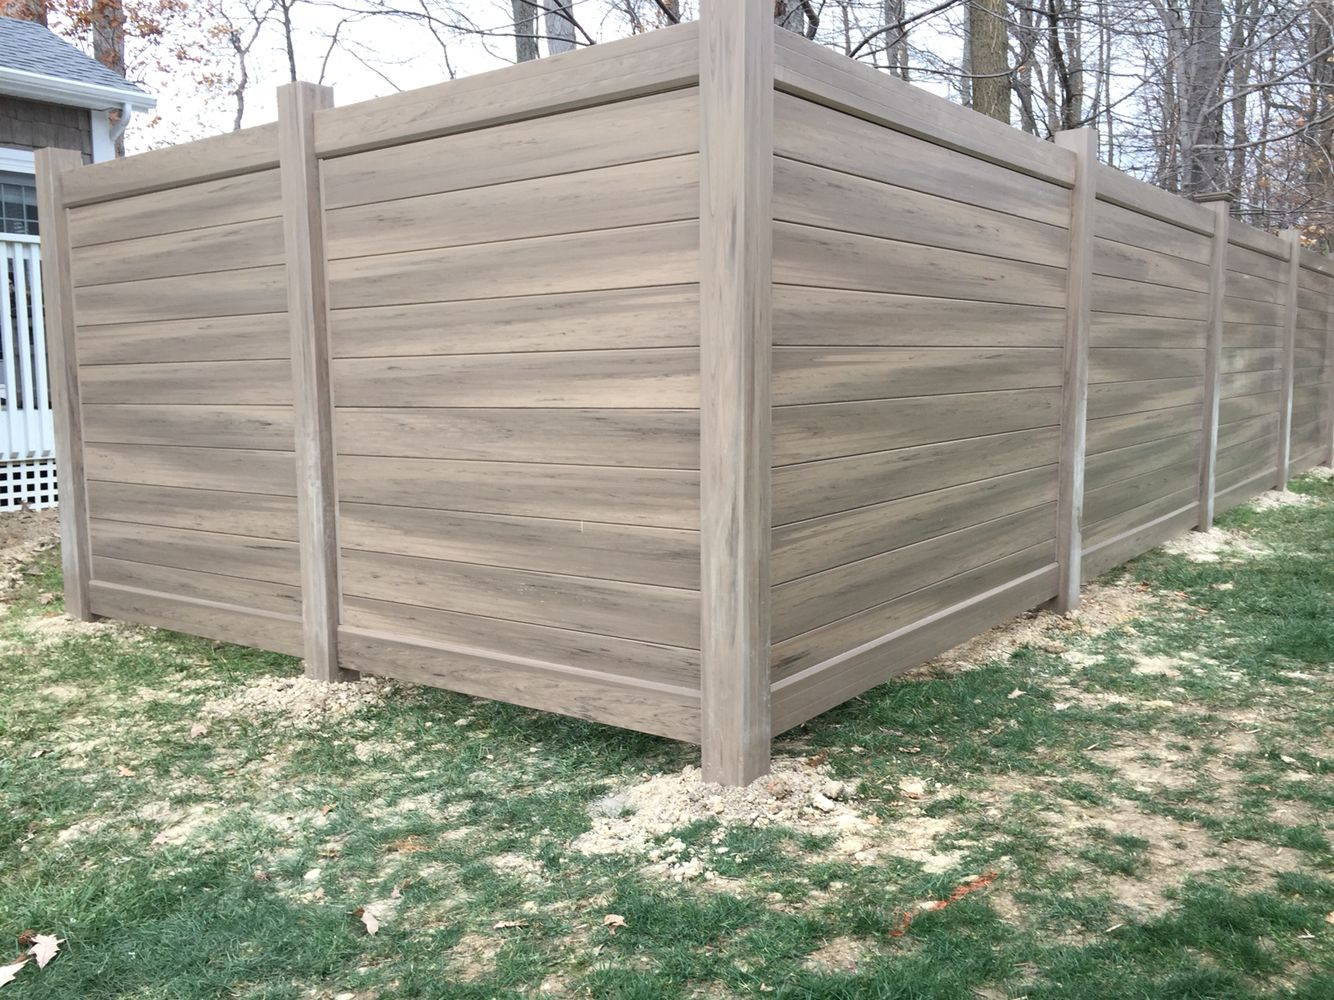 So youve decided on building a wooden fence but need a bit of our new style of privacy fence 6 green teak pickets that we ran horizontally to get that true wood grain look awesome look to a beautiful house baanklon Gallery